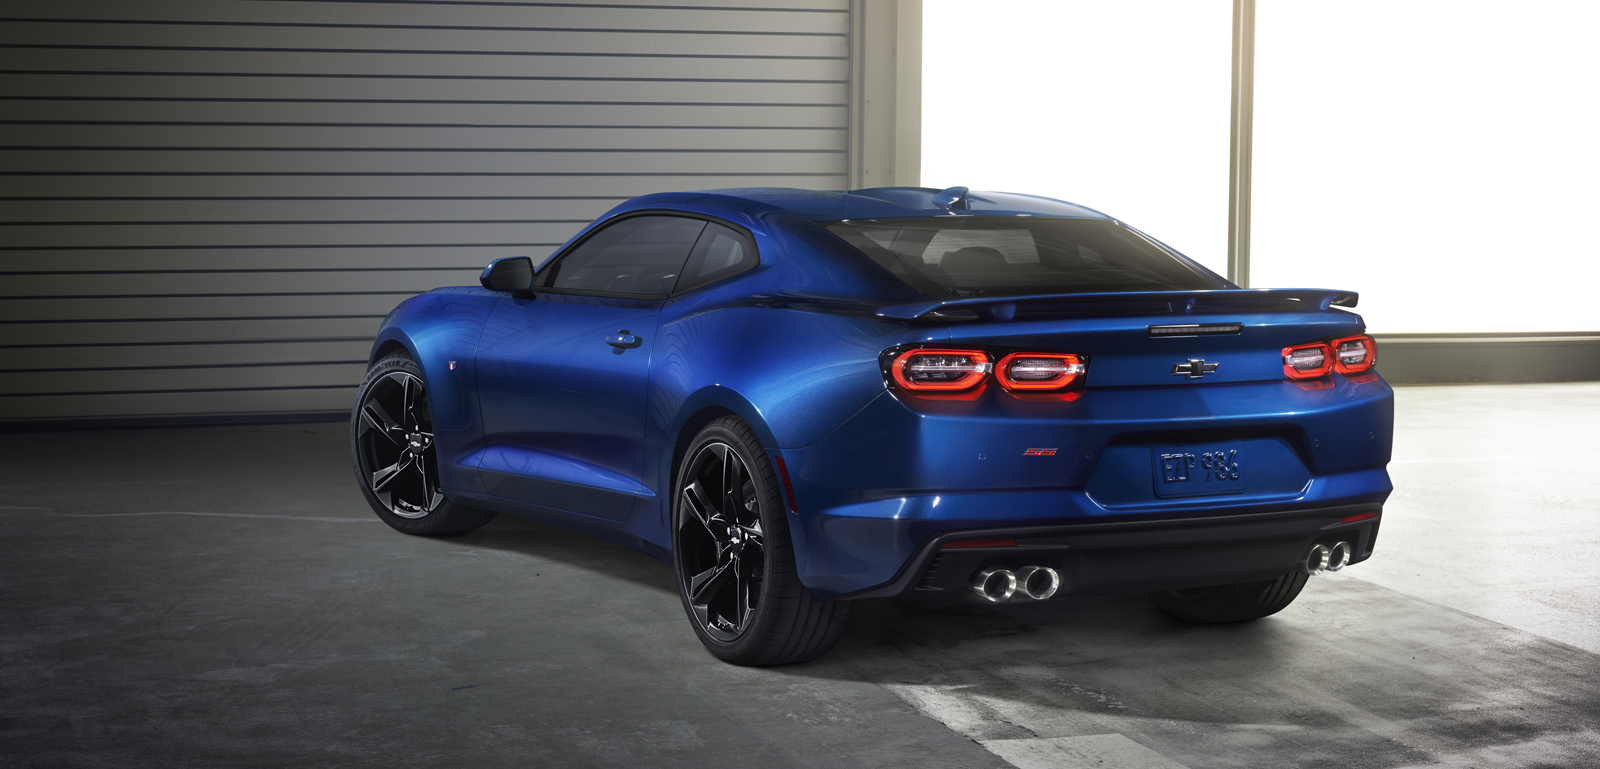 2019 Camaro S New Led Taillamps With A More Sculptured Evolution Of Chevrolet Signature Dual Element